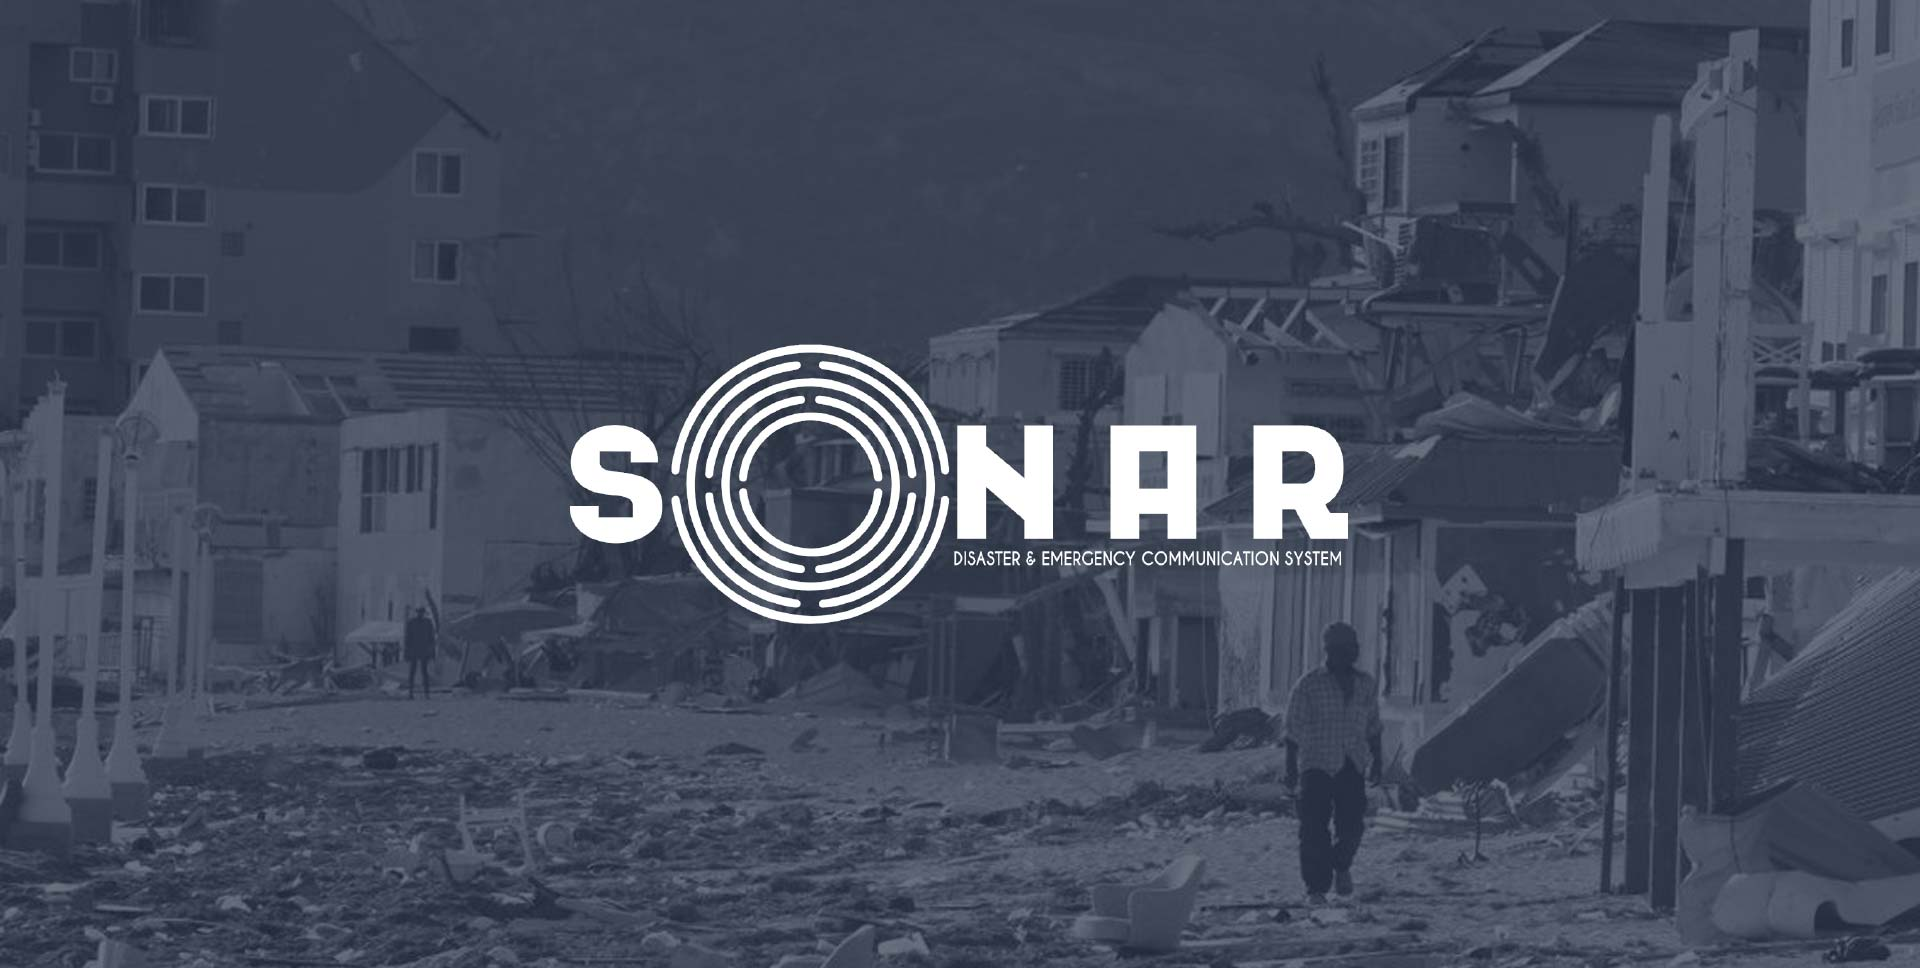 SONAR, De-centralized emergency management system for disiater relief